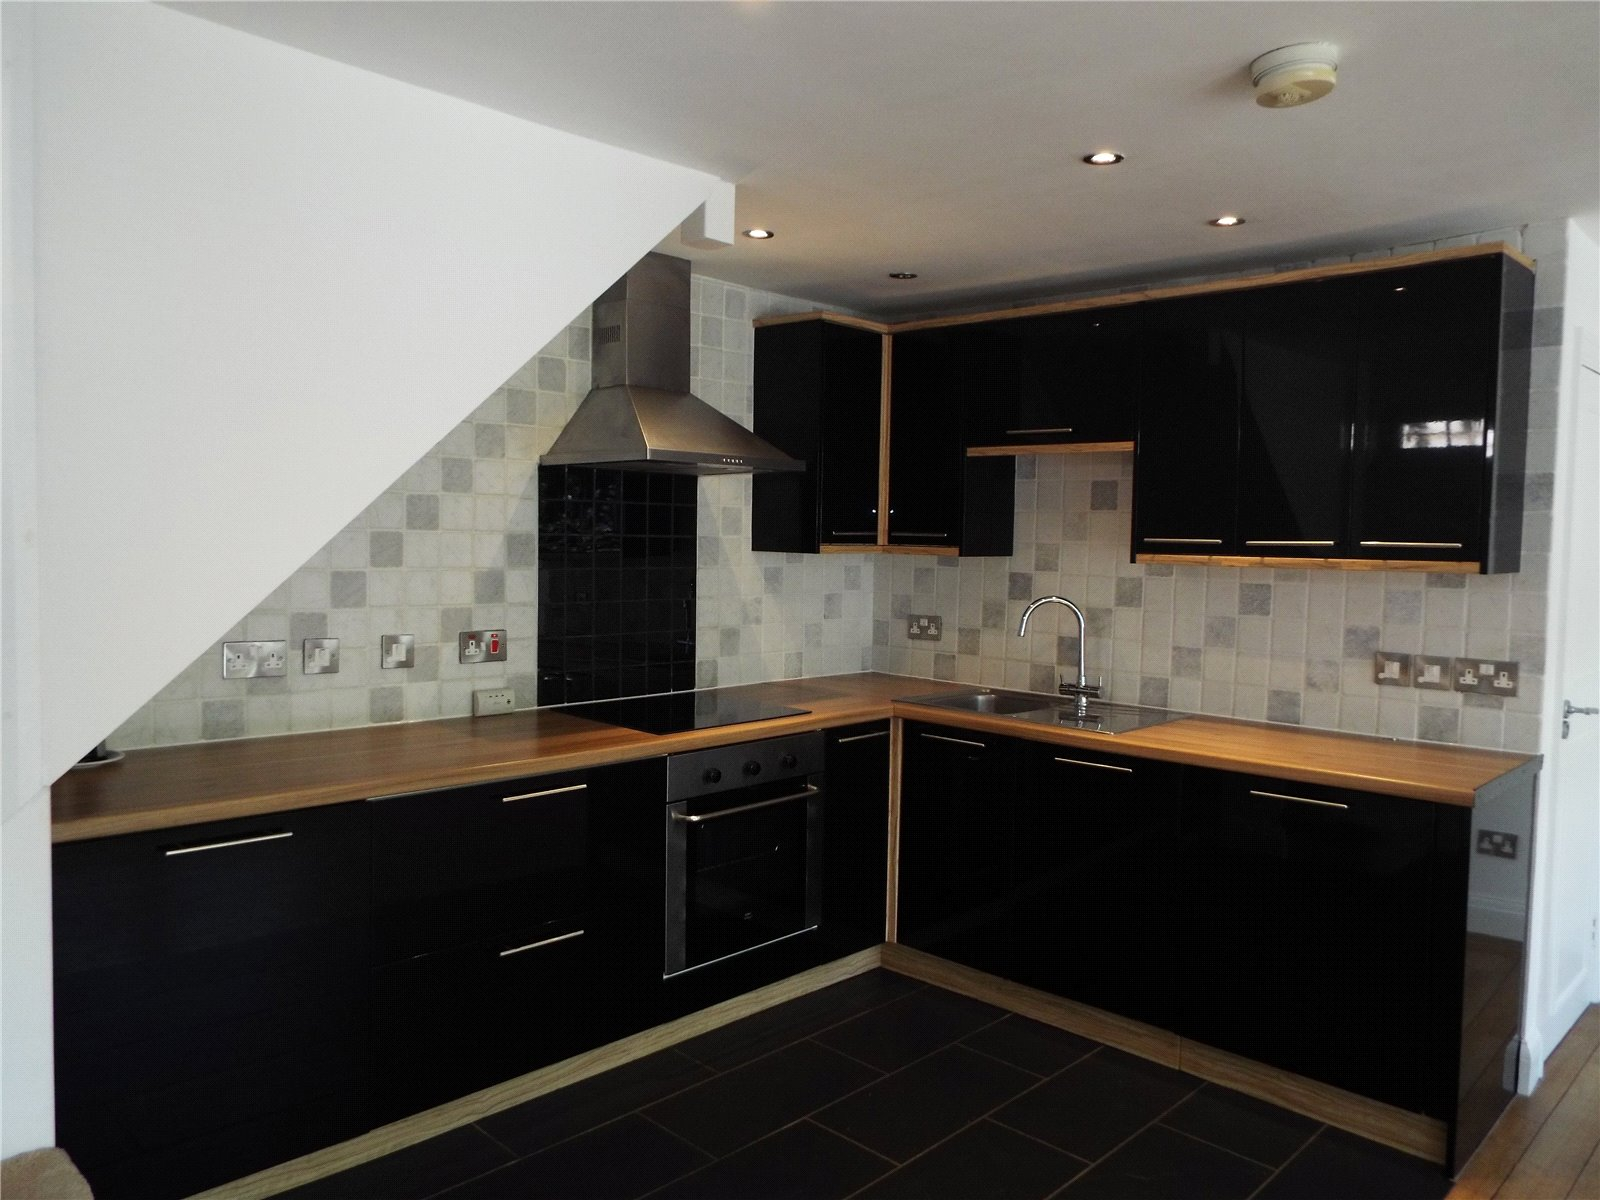 1 bed house to rent in Potters Bar, EN6 1EY 0